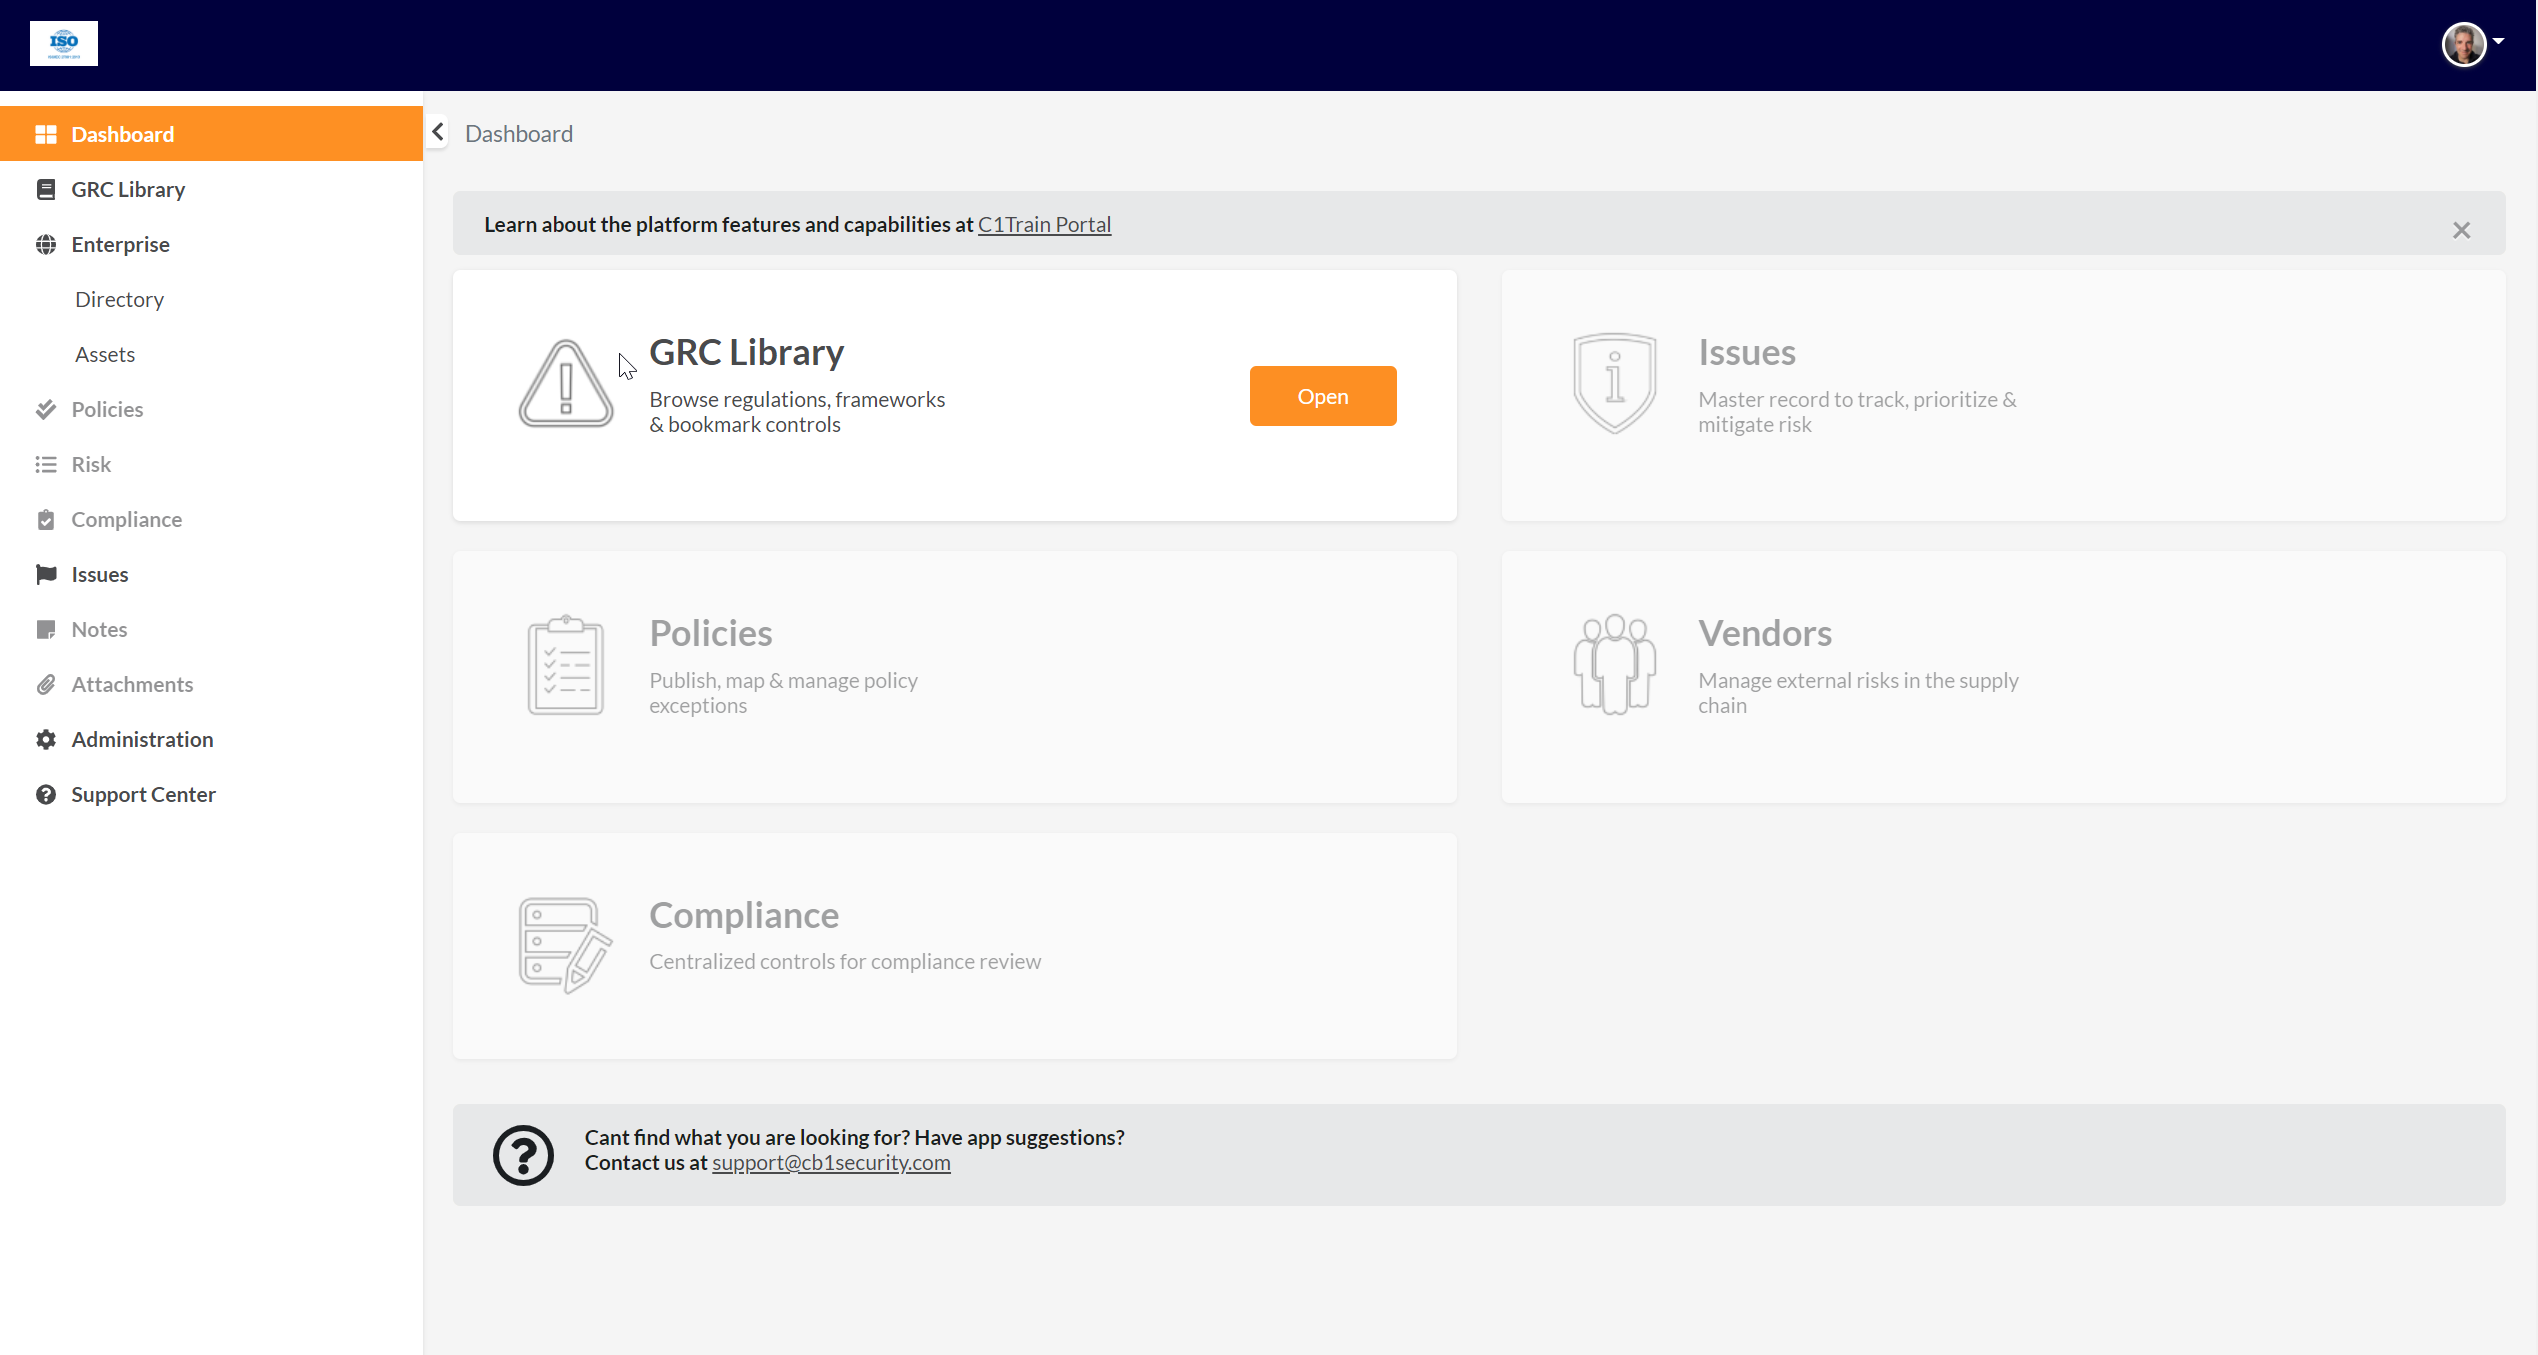 CyberOne Software - Out of the box ready GRC platform with content